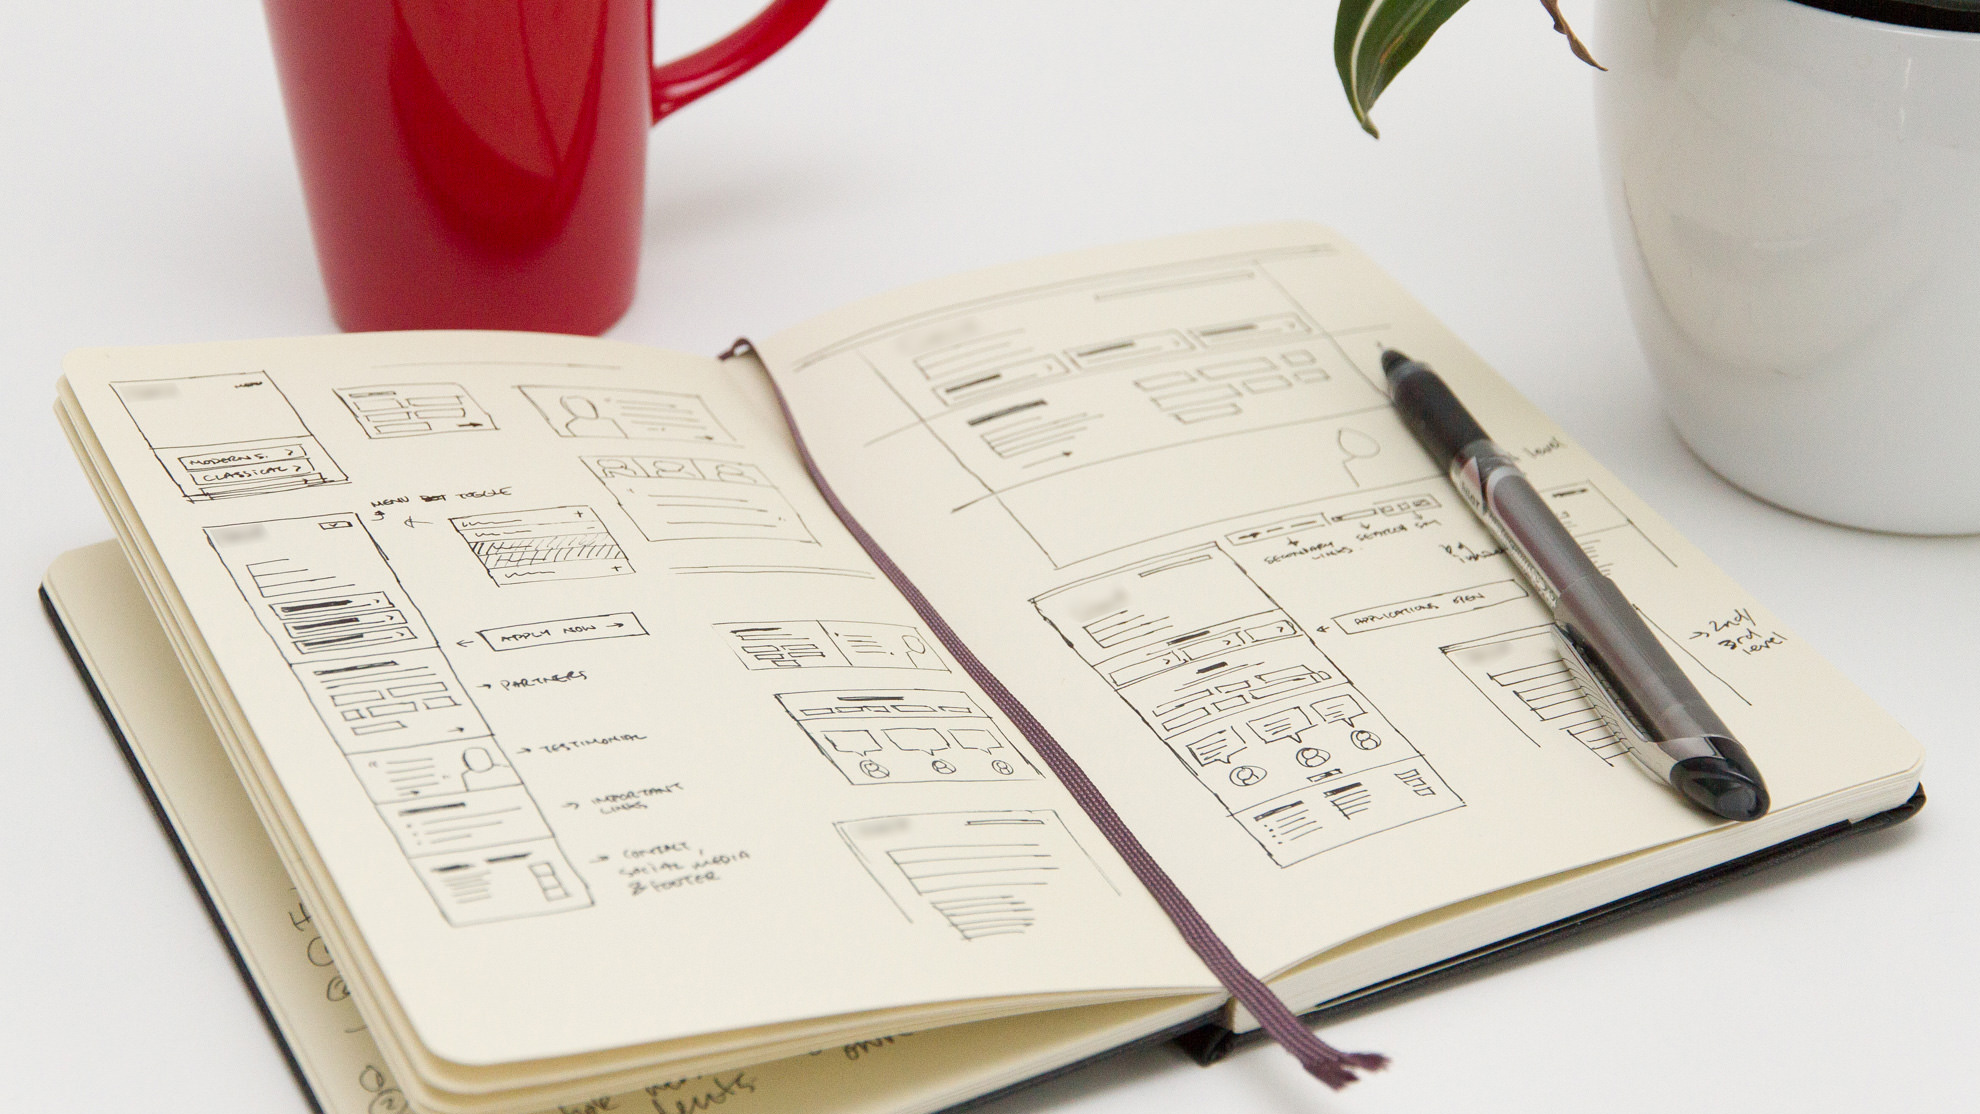 [above] Sketches and explorations. [below] Responsive wireframes.